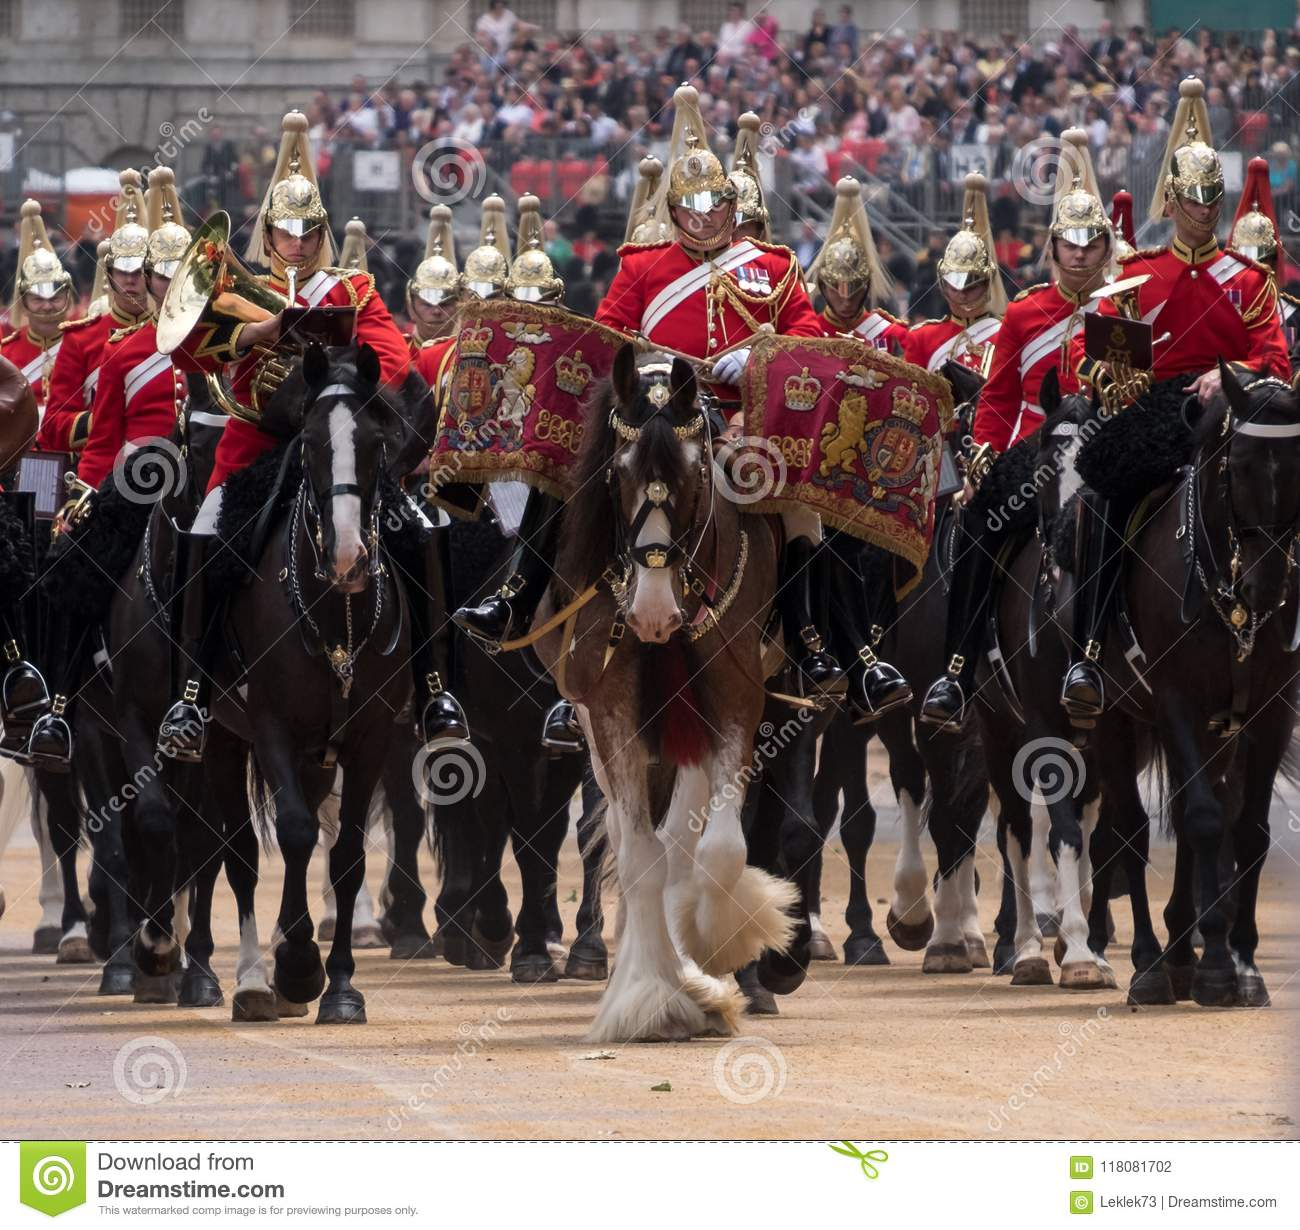 Drum horse with rider, with Household Cavalry behind, taking part in the Trooping the Colour military ceremony, London UK